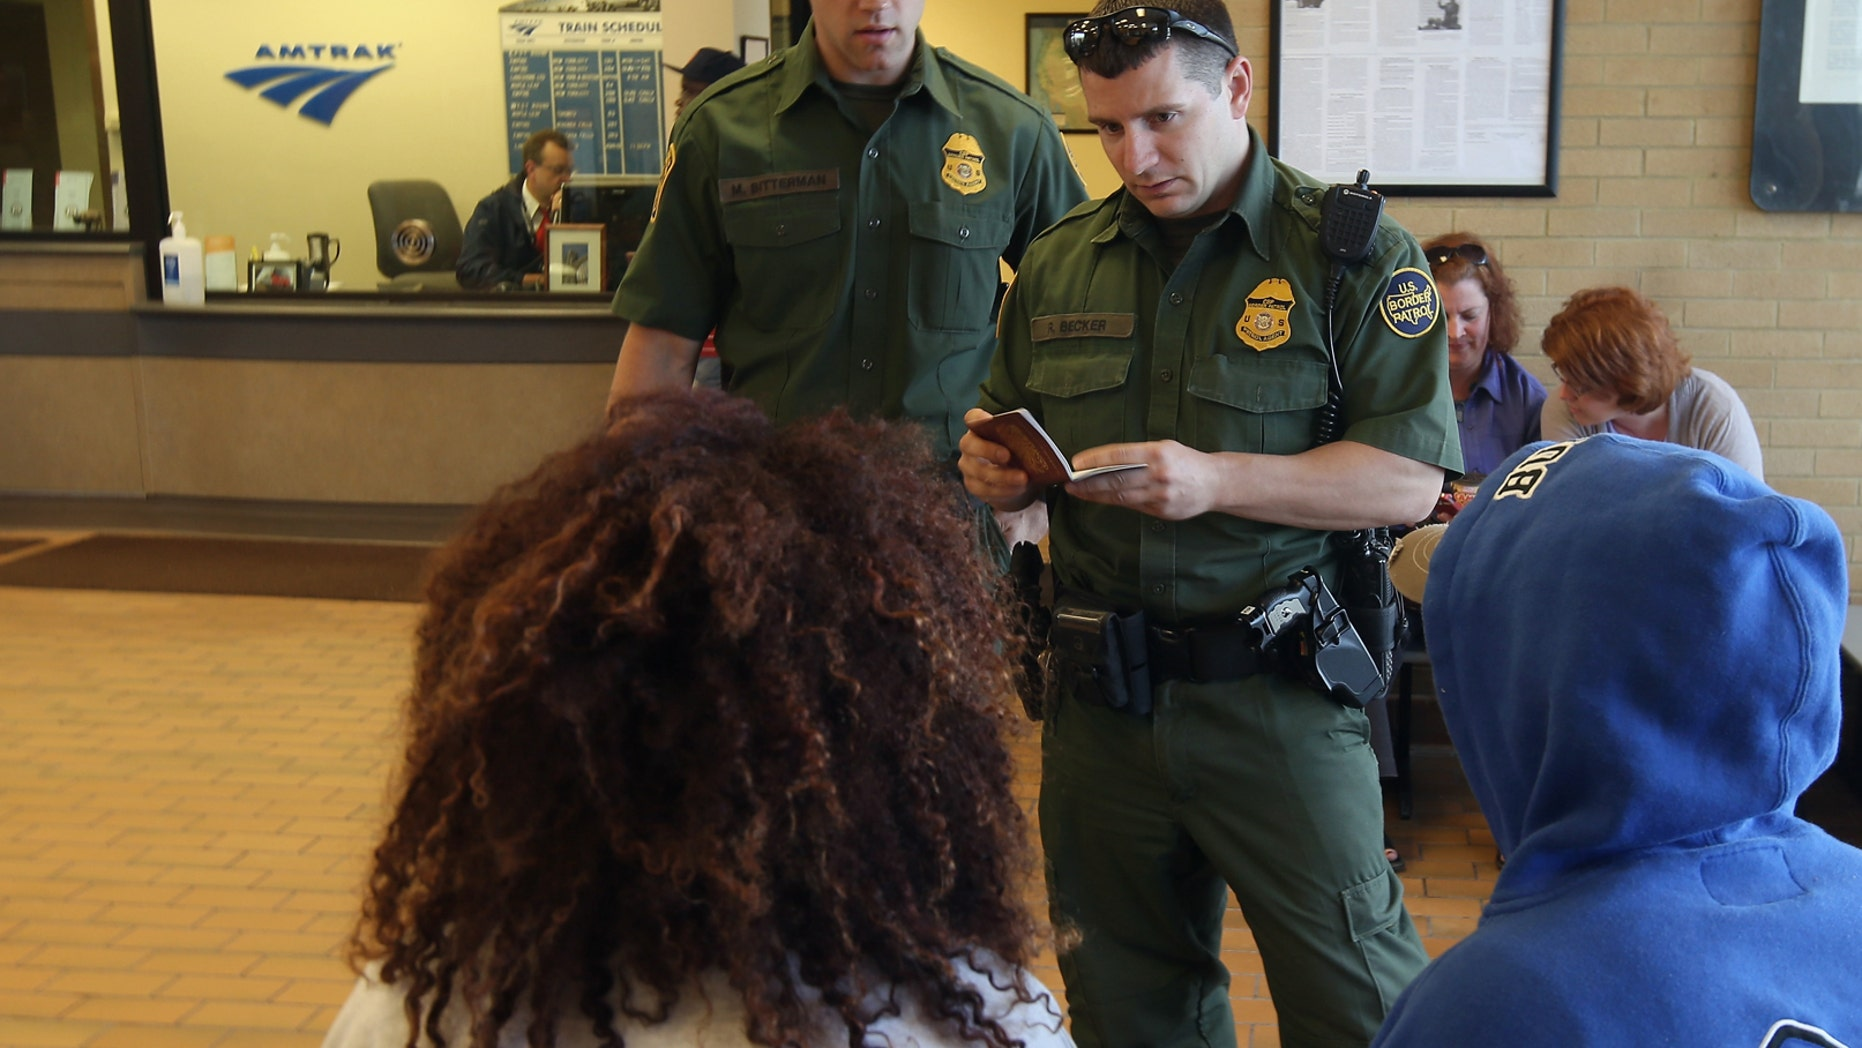 DEPEW, NY - JUNE 05:  U.S. Border Patrol agents check passenger identifications at a train station on June 5, 2013 in Depew, New York. The agents set up a 24 hour check of transportation hubs in and around Buffalo. They said they received intelligence of undocumented immigrants passing through the area. The Border Patrol also monitors cross border traffic along the northern border between the United States and Canada.  (Photo by John Moore/Getty Images)